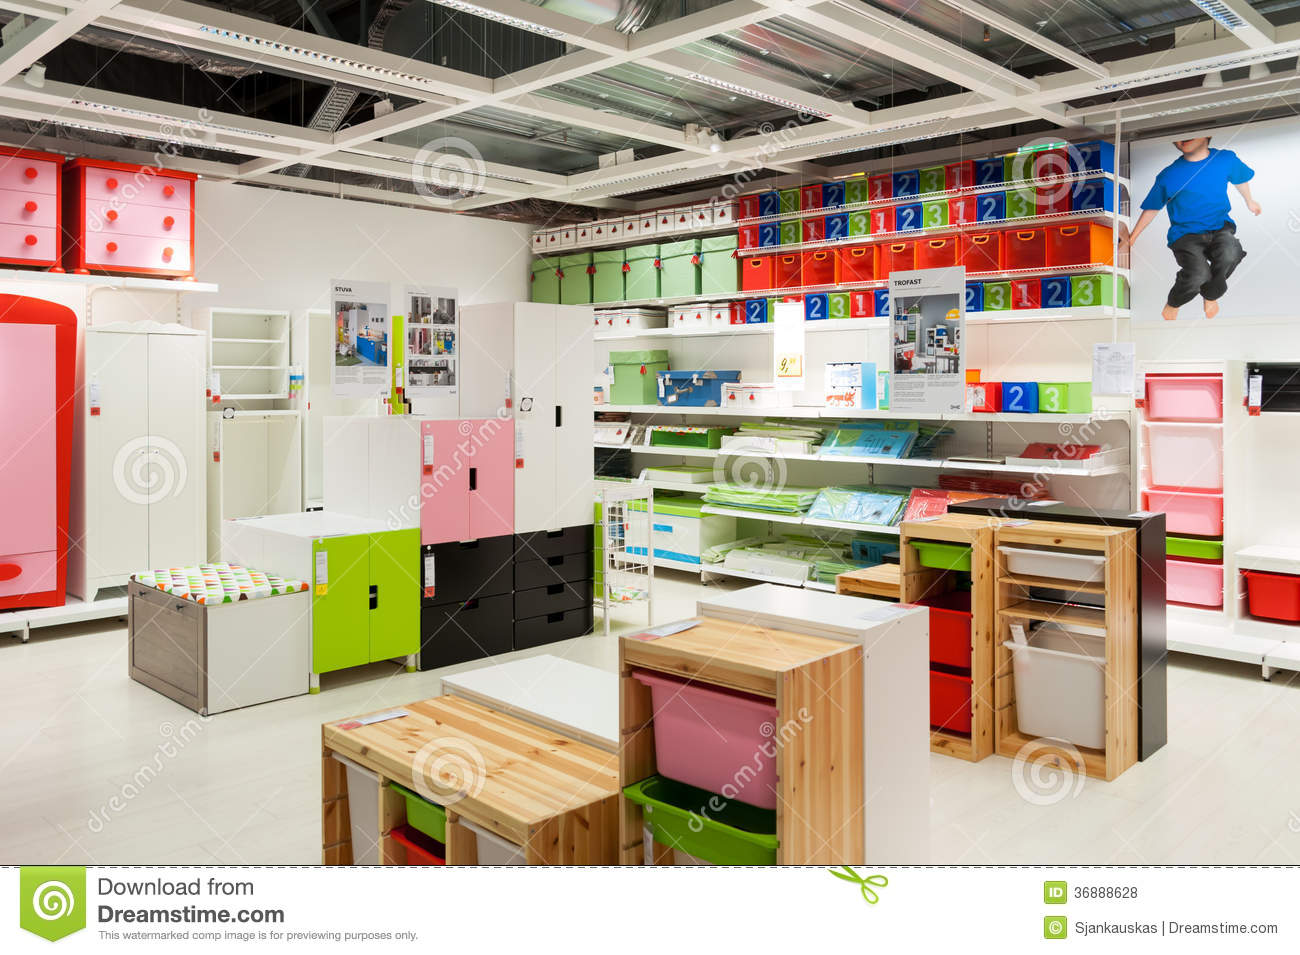 Editorial Stock Photo  Download Ikea Furniture Store Kids. Ikea Furniture Store Kids Zone Editorial Stock Photo   Image  36888628